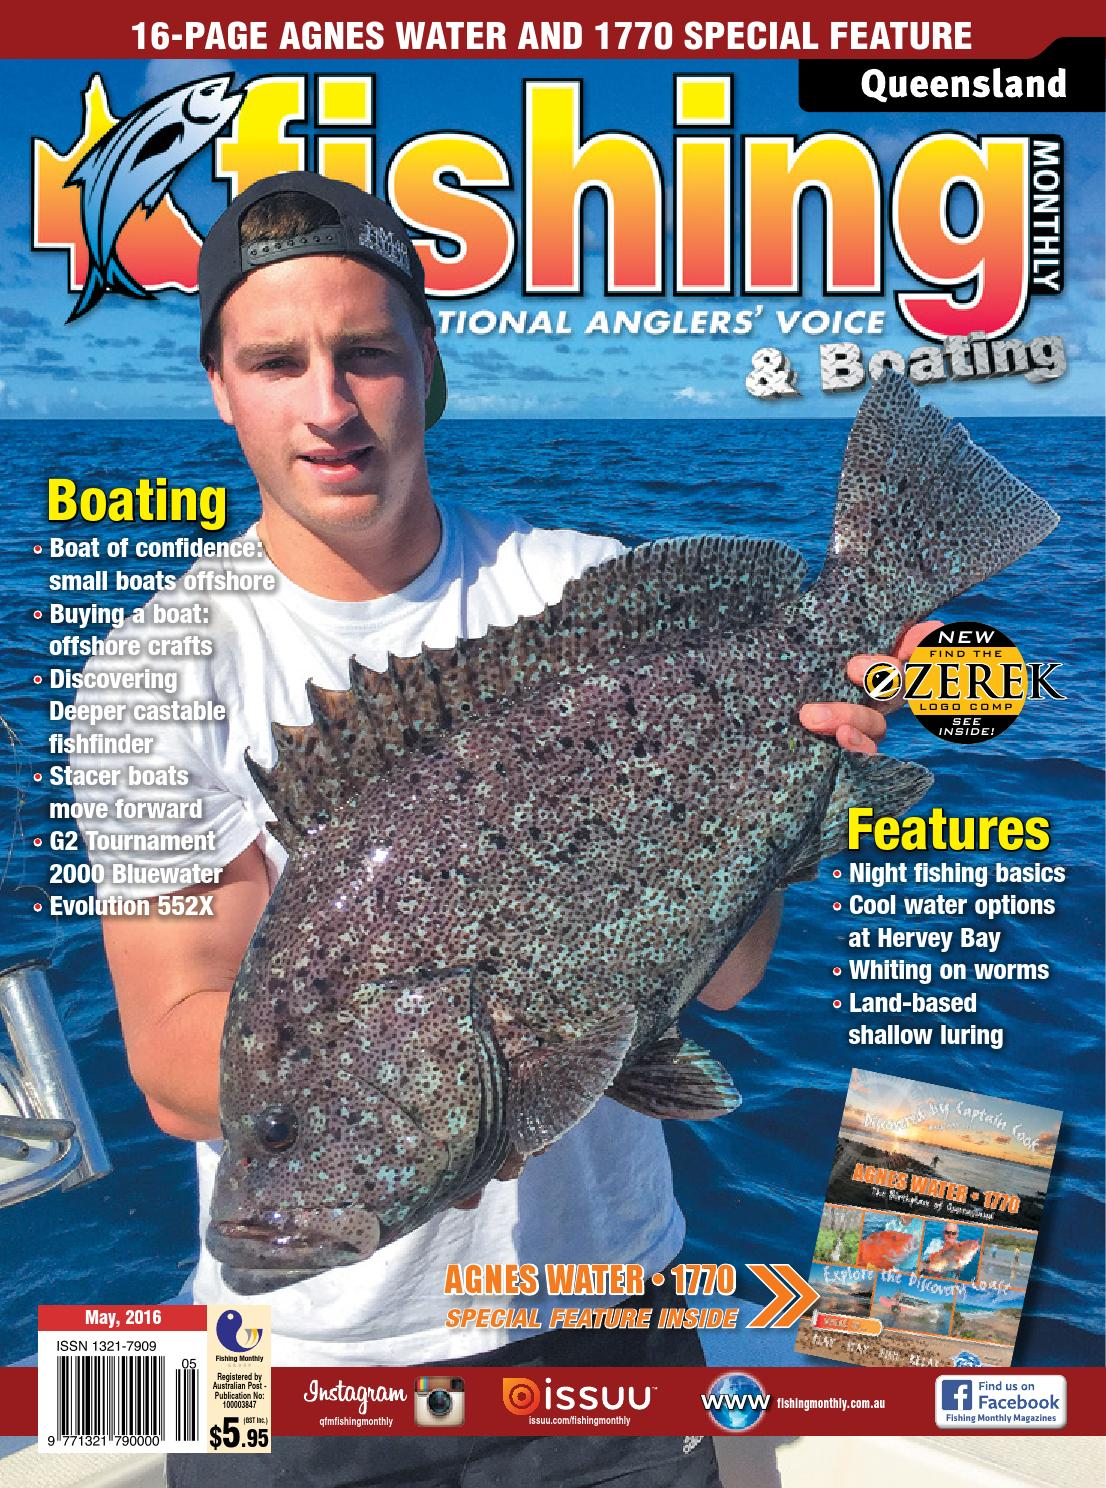 Queensland Fishing Monthly May 2016 By Issuu Fancy Feast Classic Wet Fish Tuna 85g 24 Pcs Free Flashdisk